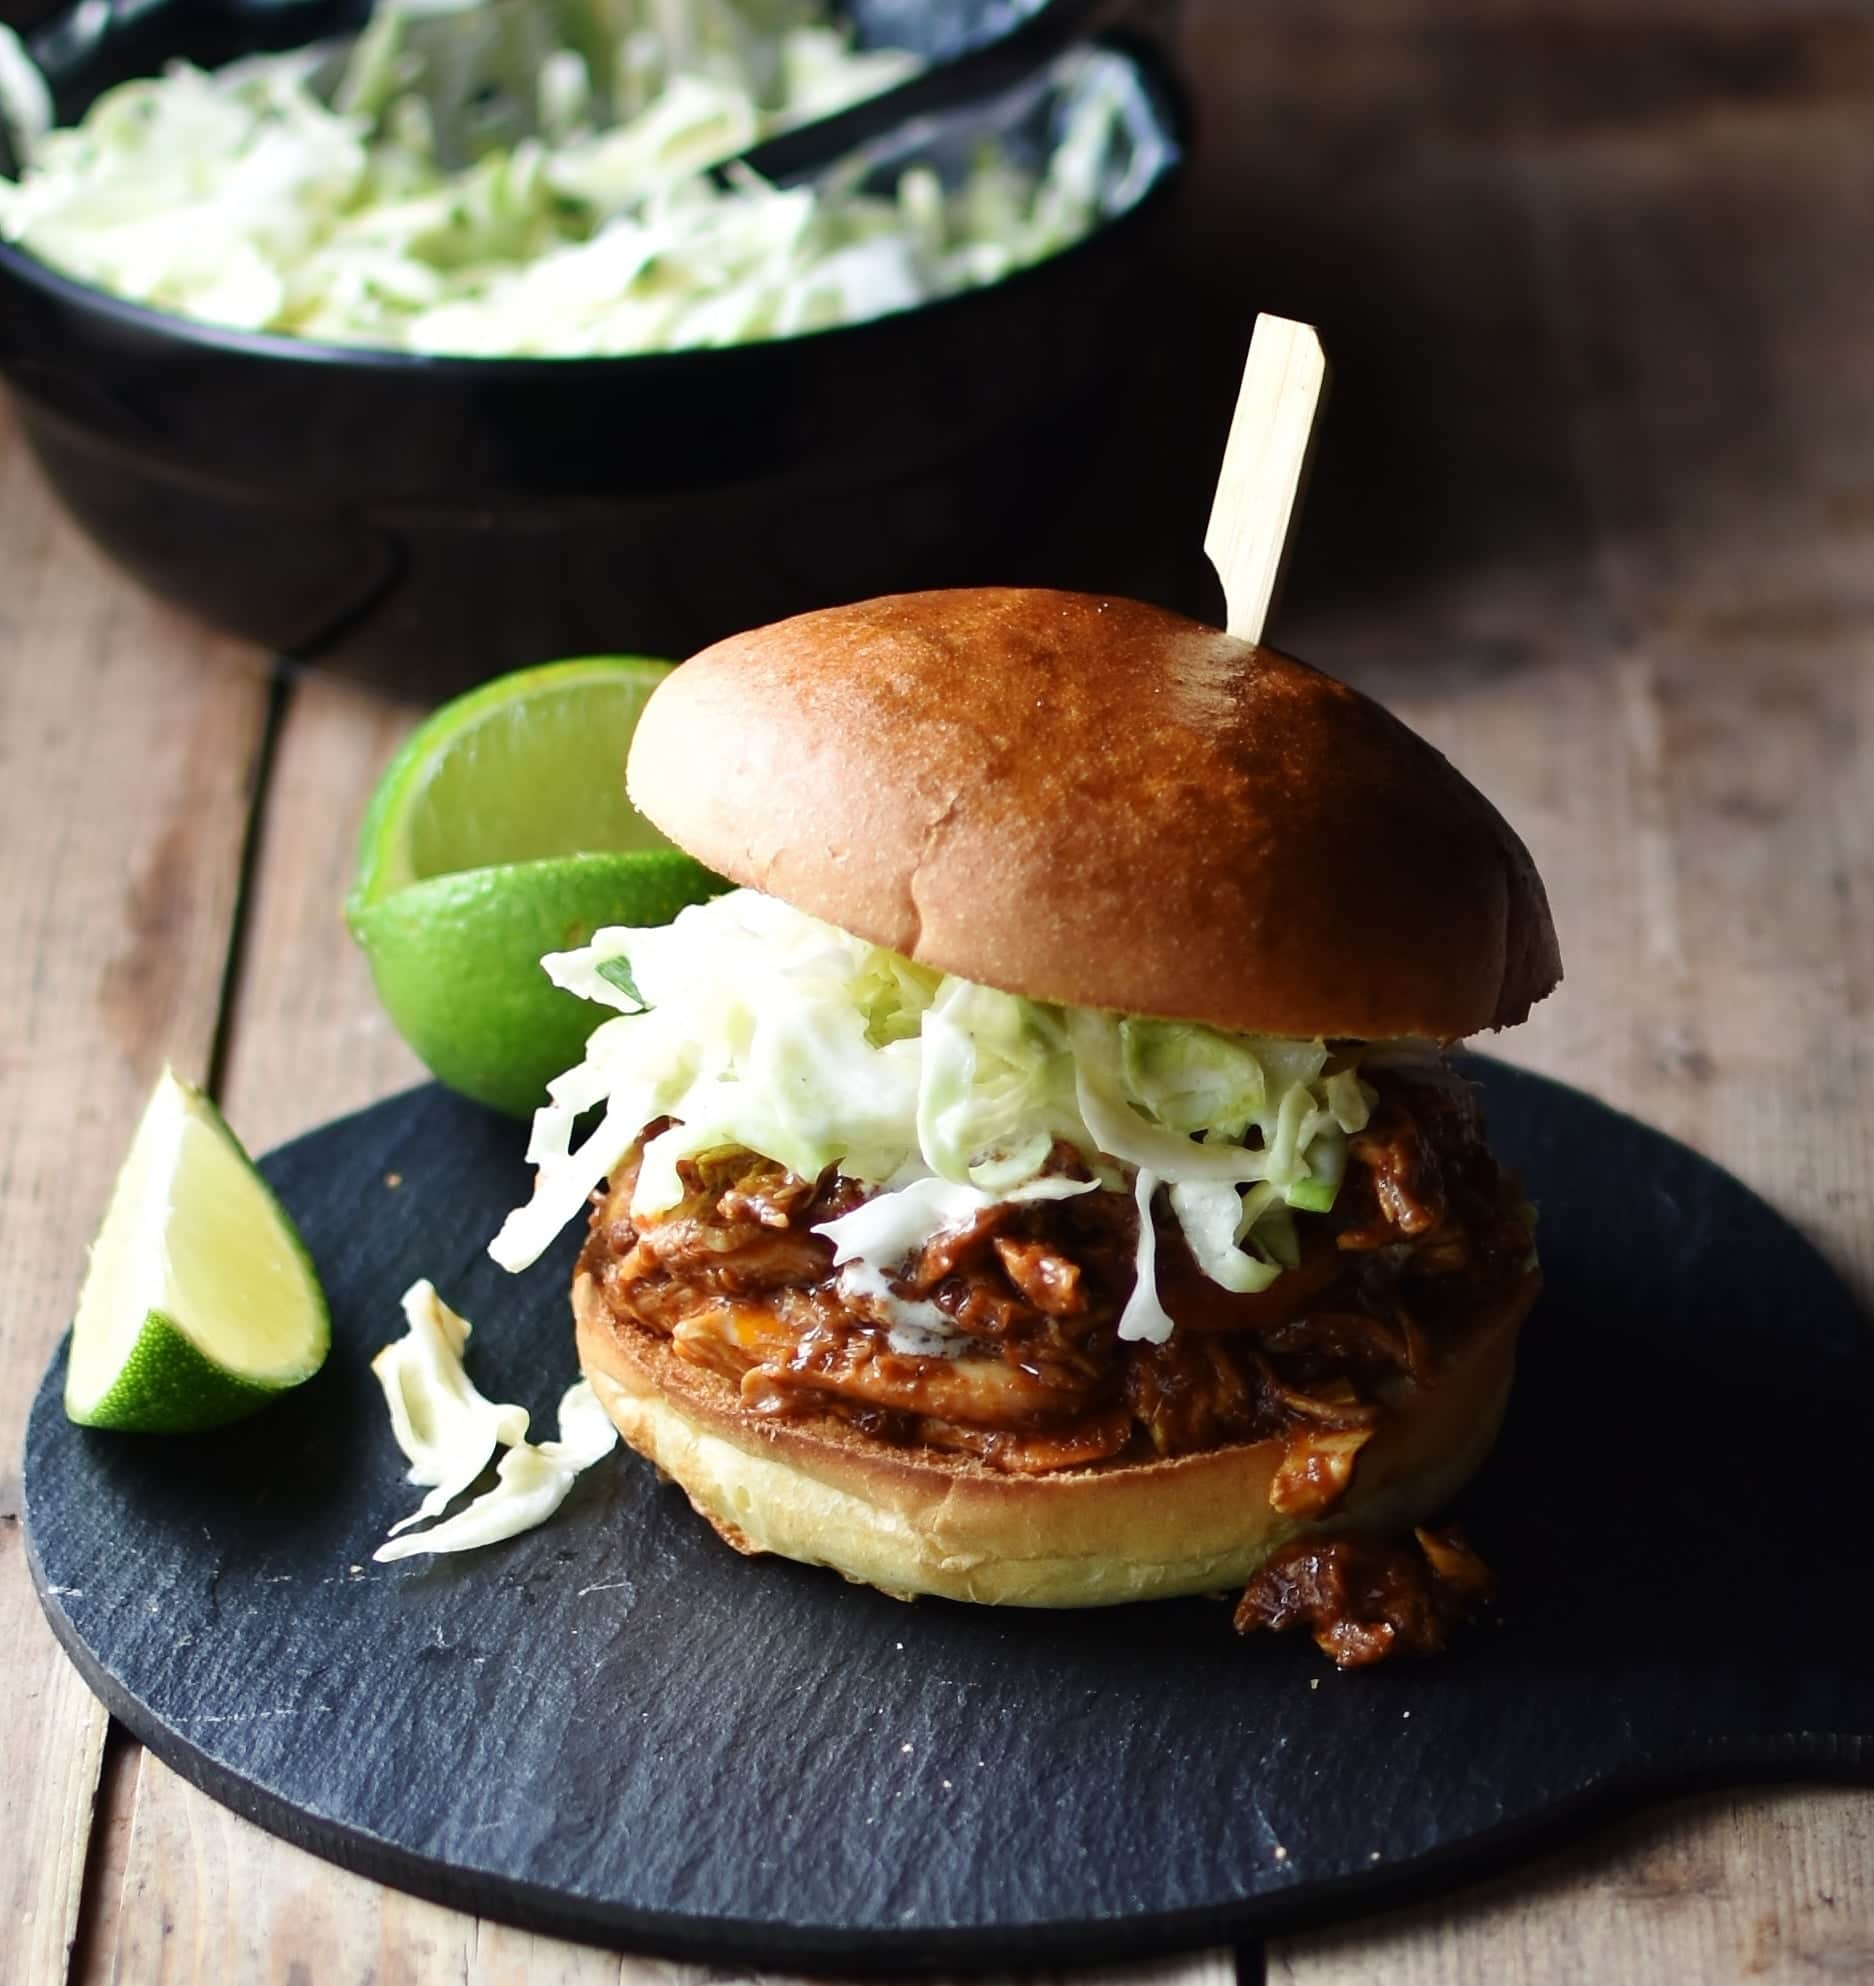 Side view of shredded chicken with coleslaw inside burger bun pierced with bamboos stick, with lime and coleslaw in black dish in background.